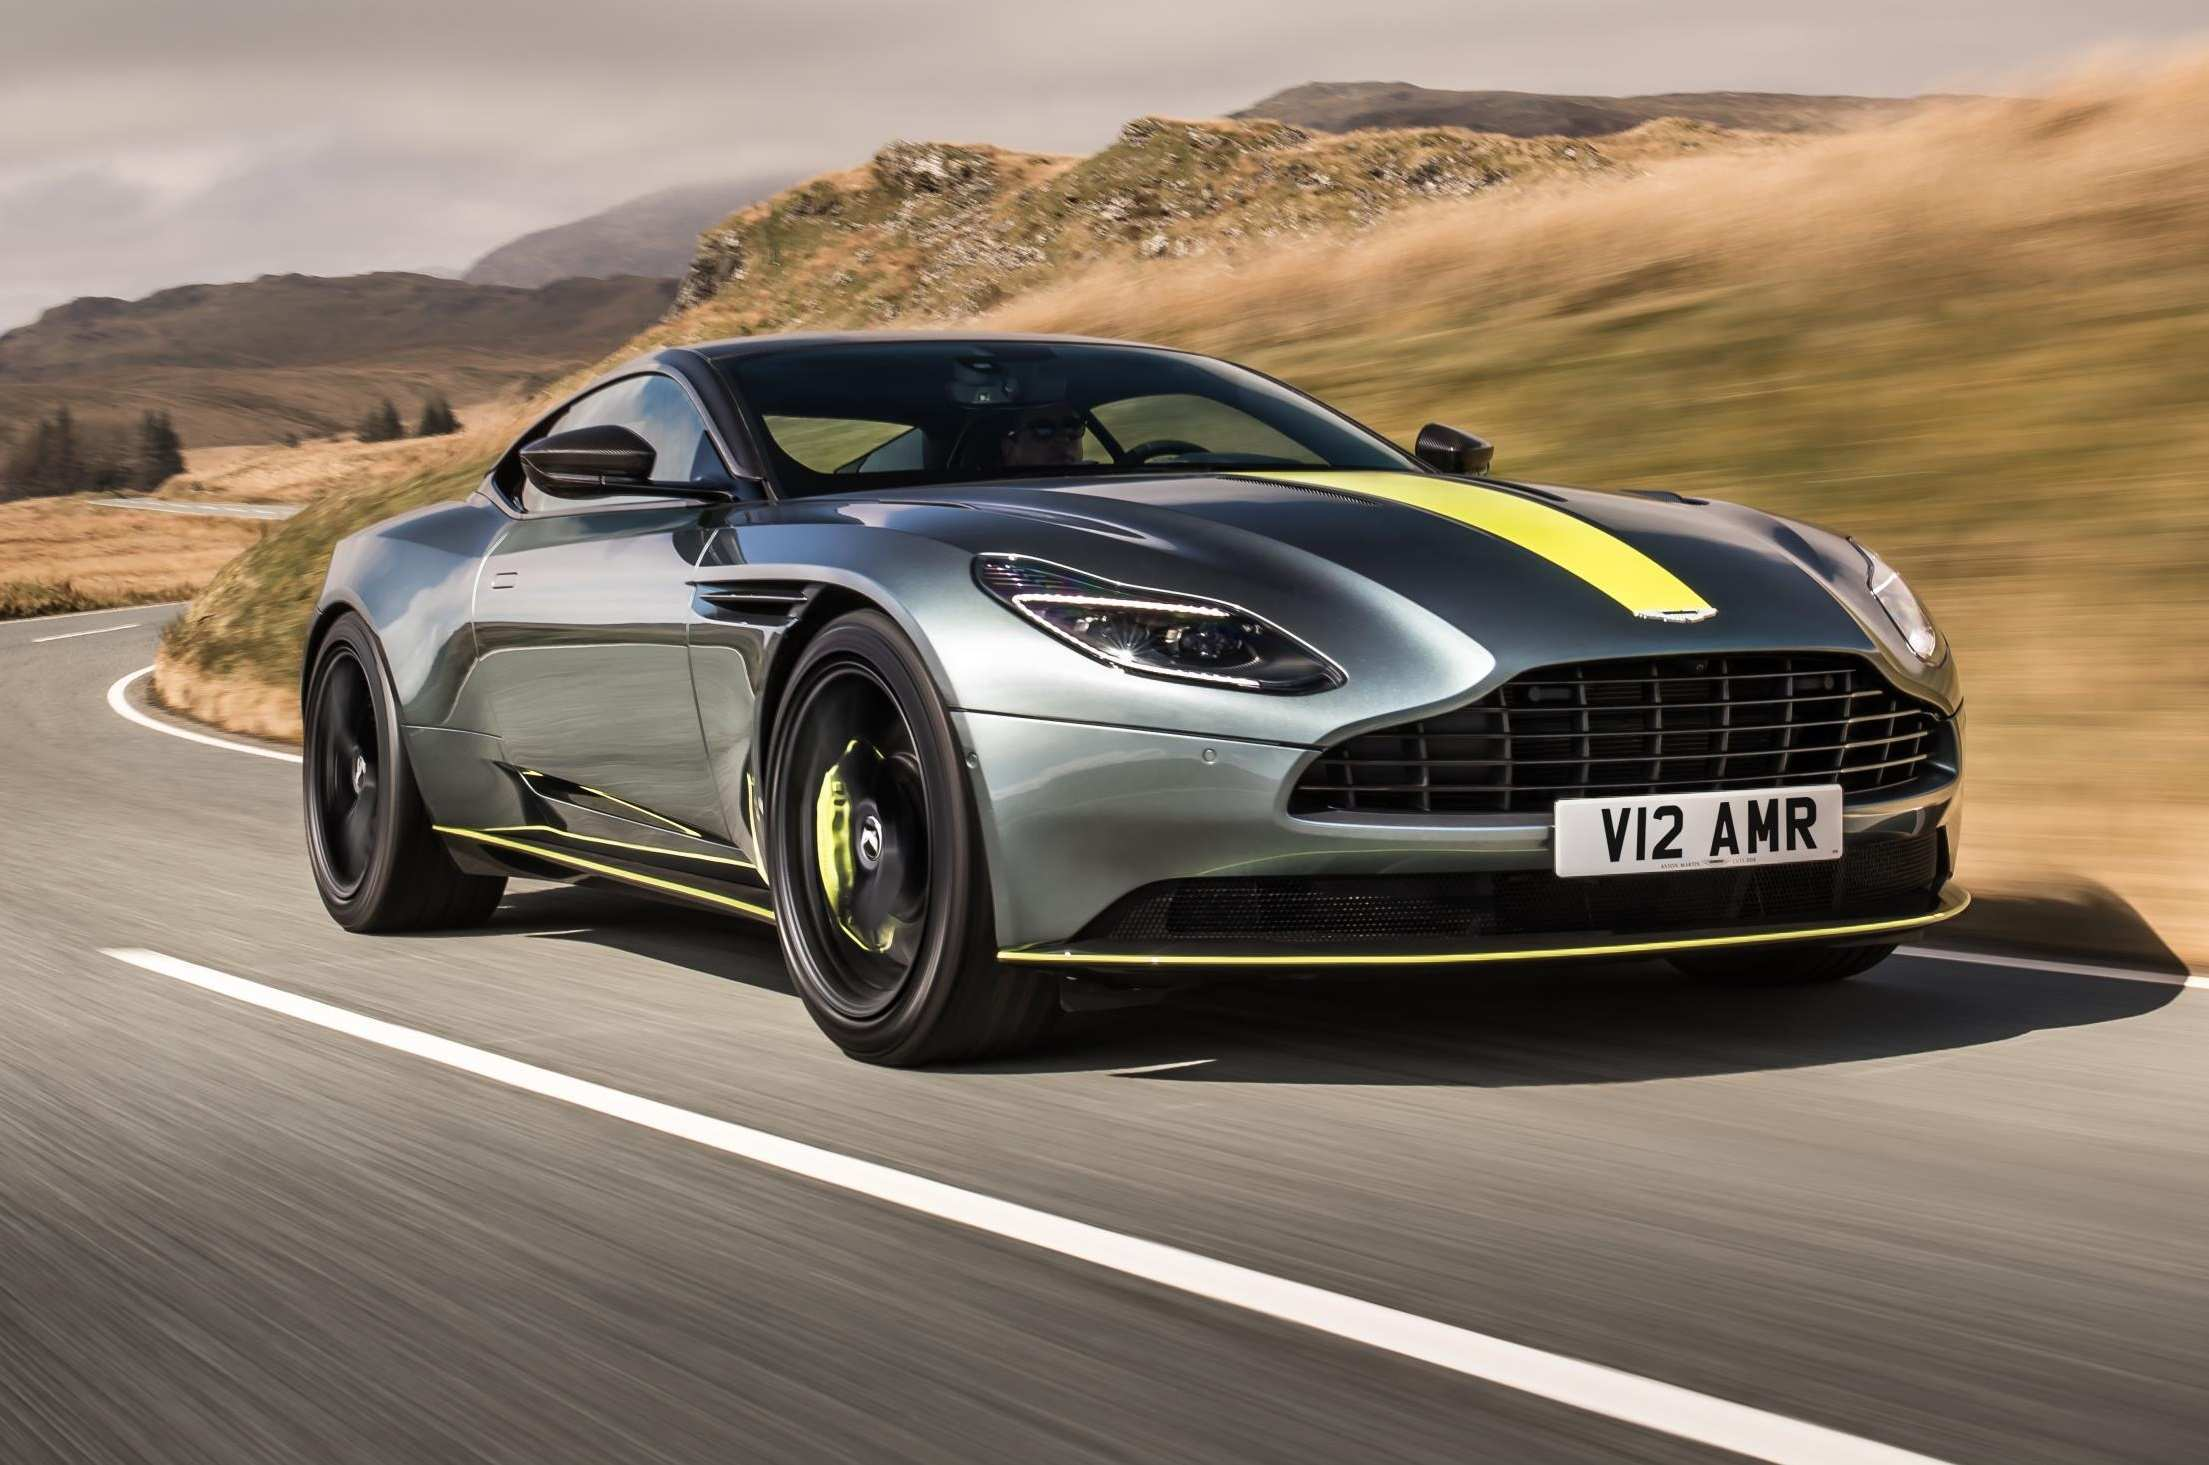 52 All New 2019 Aston Martin Db11 Release with 2019 Aston Martin Db11